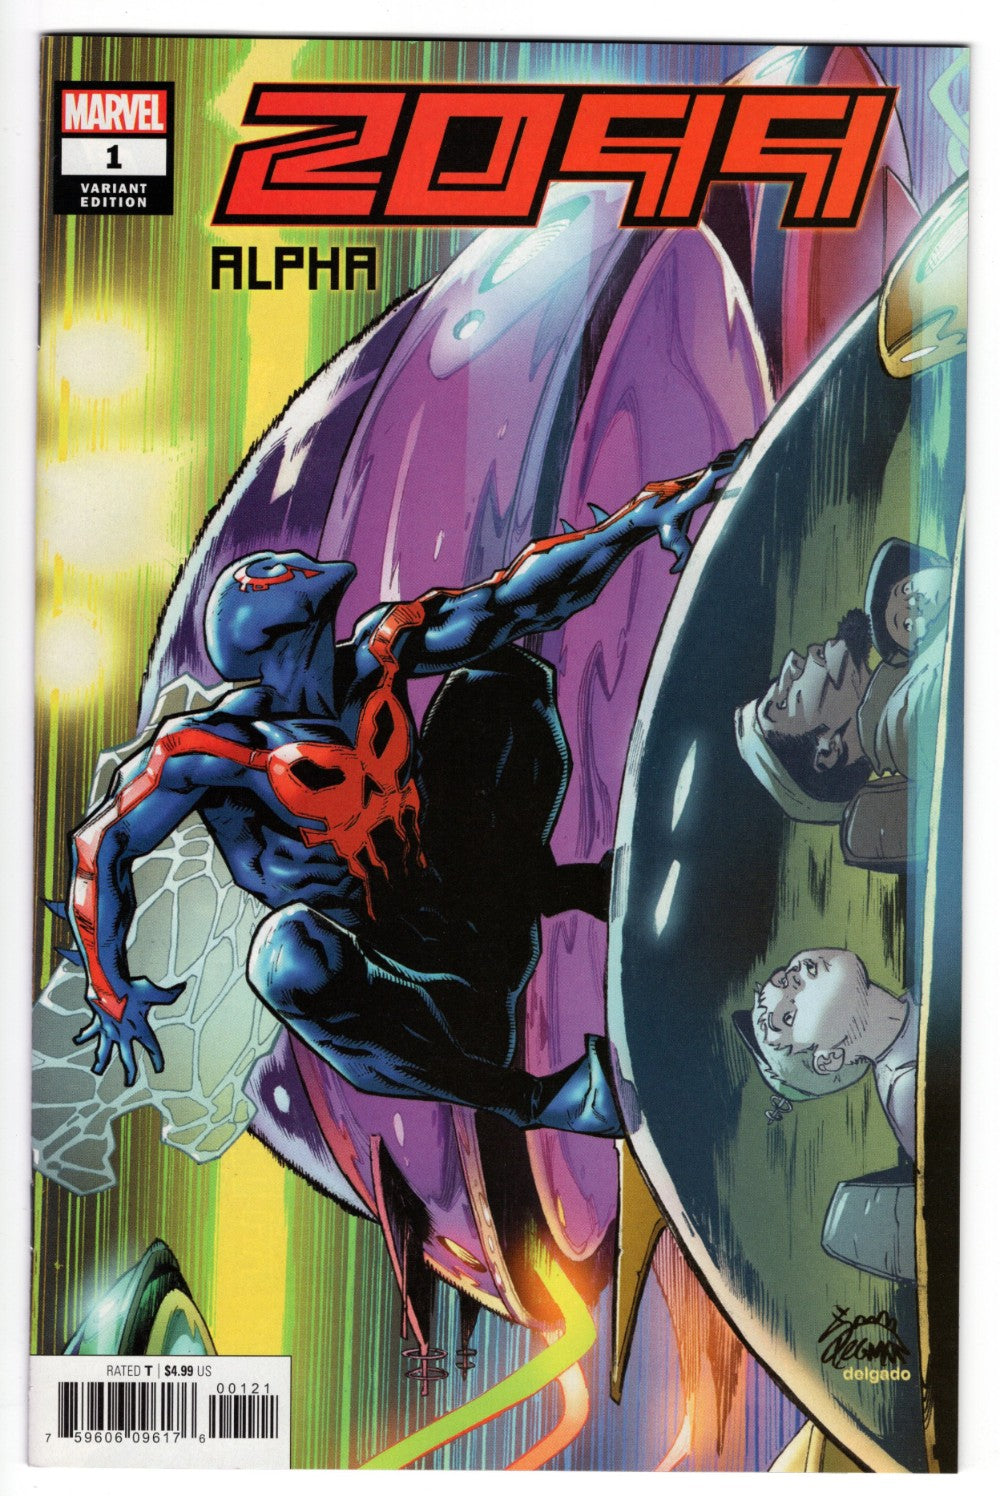 2099 ALPHA #1 1 in 50 RYAN STEGMAN VARIANT